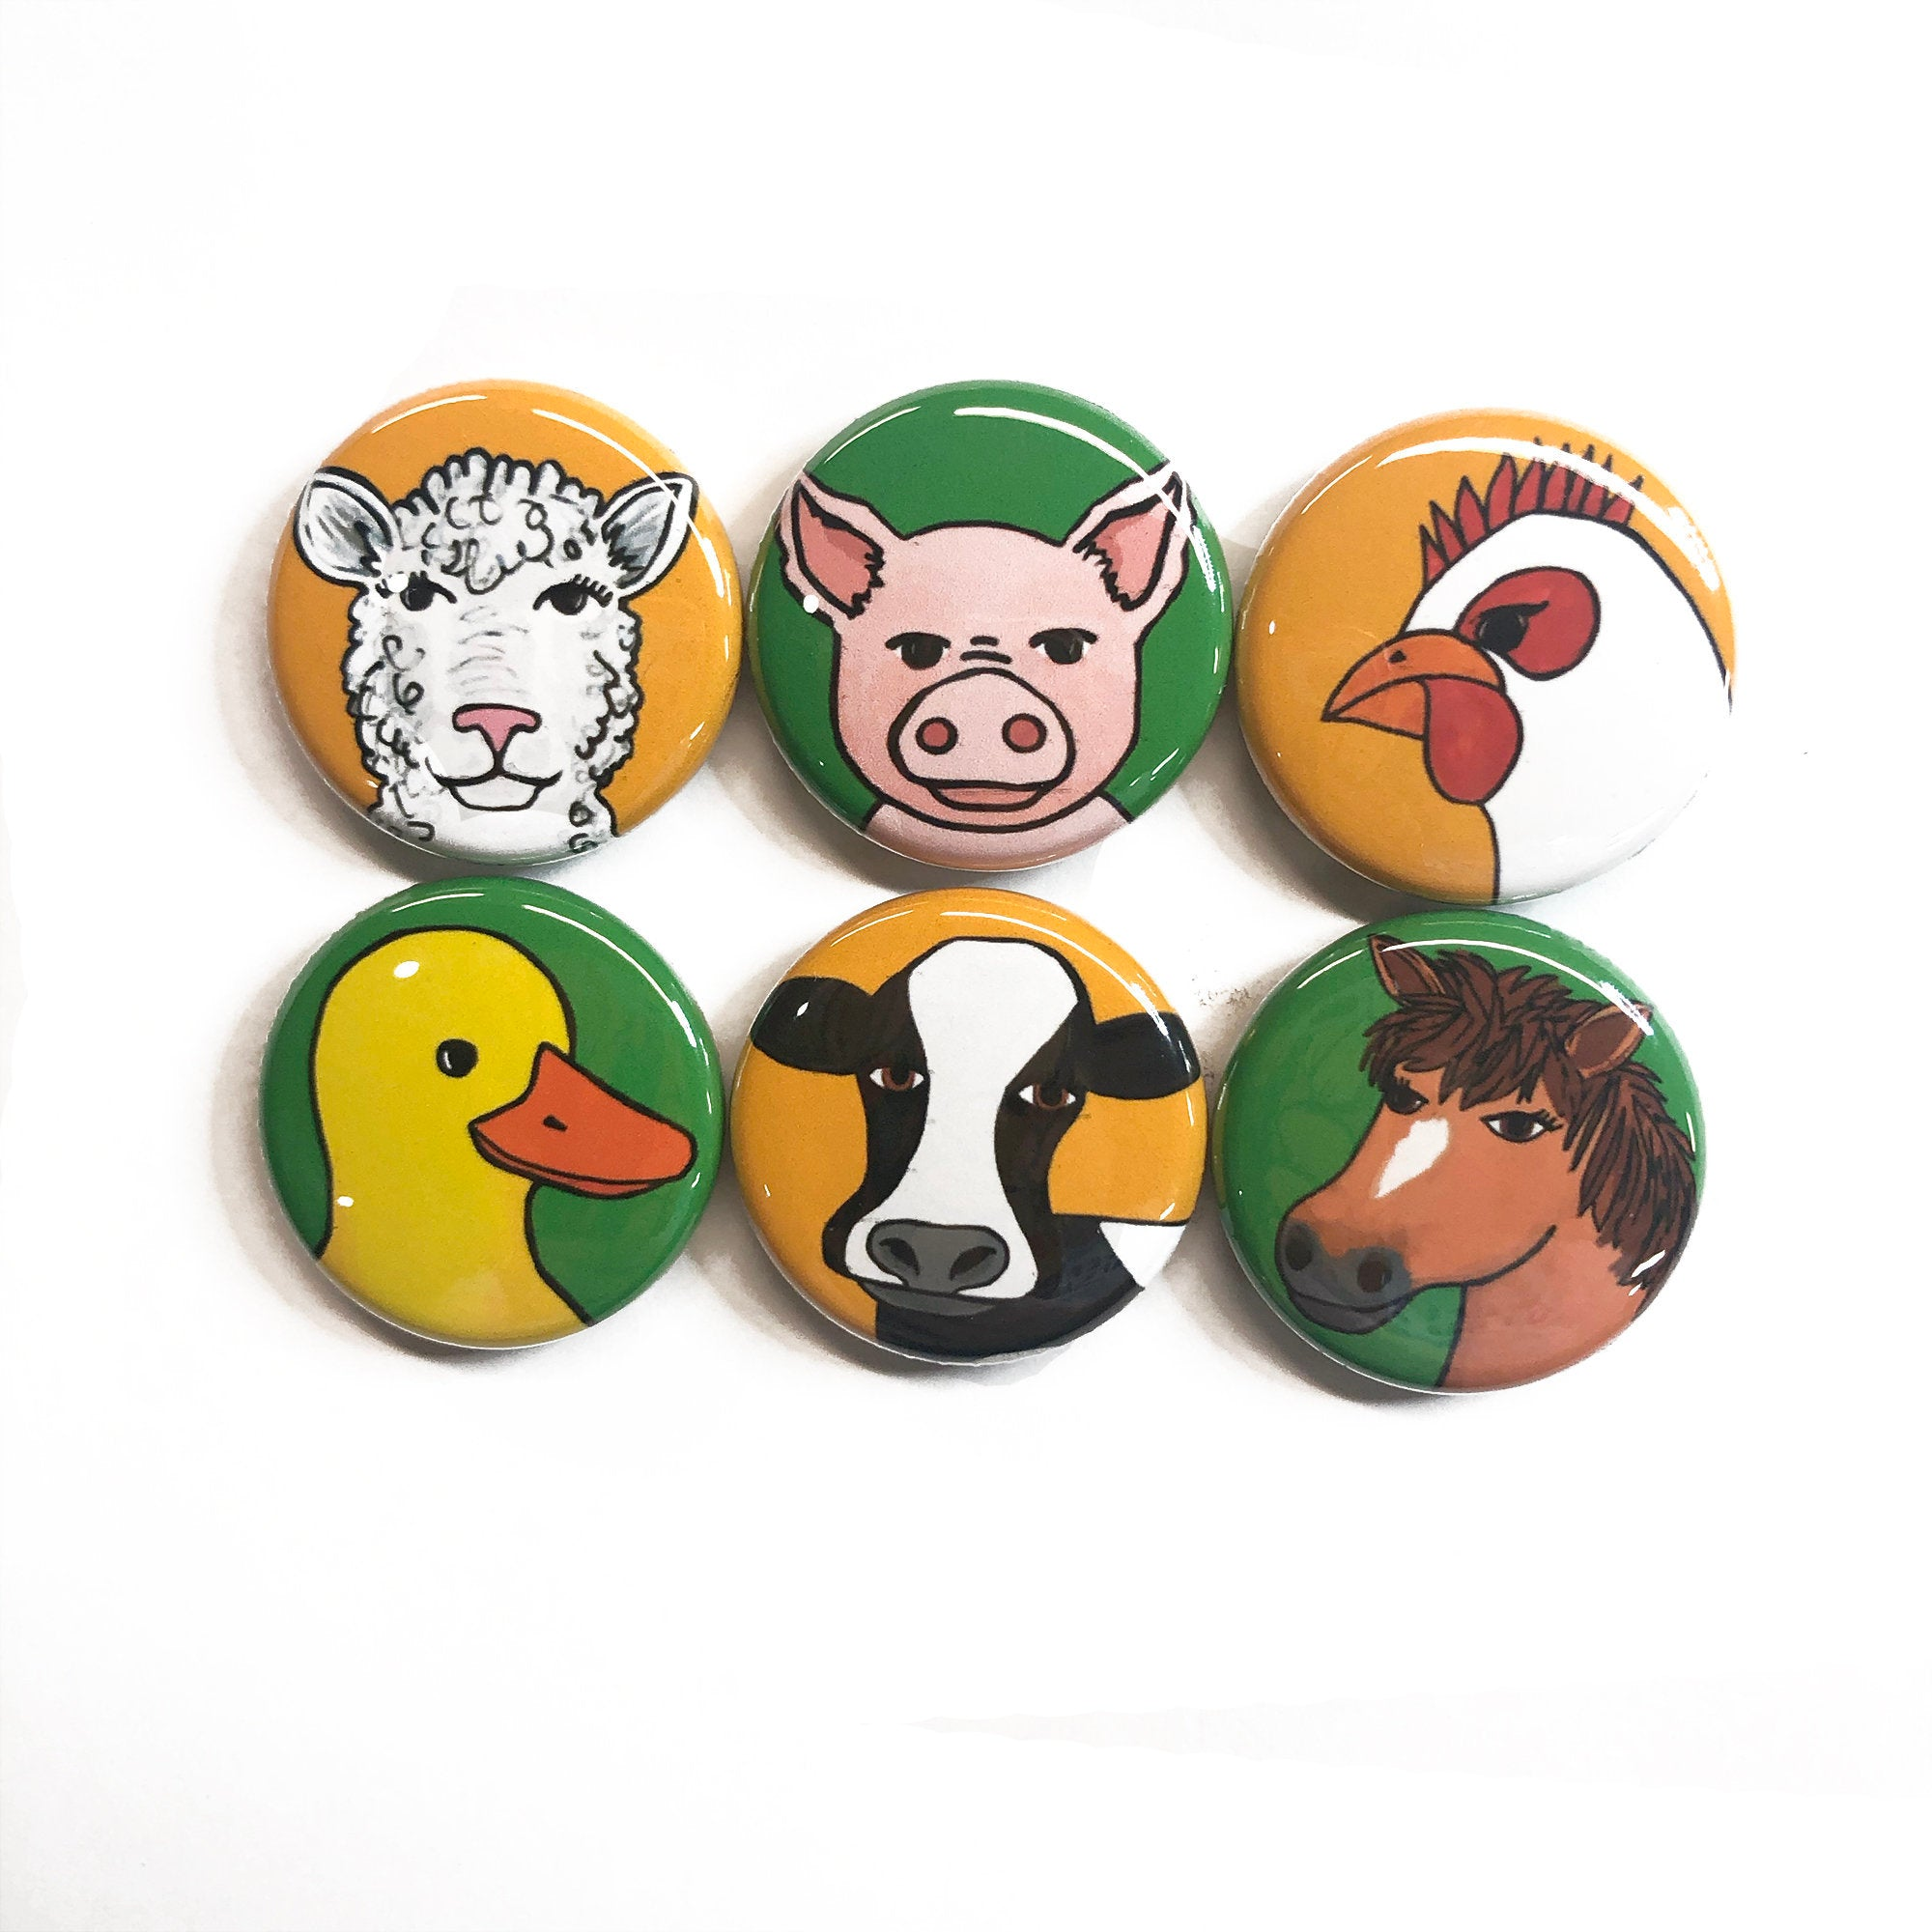 Farm Animal Magnets or Pin Back Buttons - Cow, Pig, Sheep, Rooster, Duck, Horse Fridge Magnet Set or Pinback Badge Set